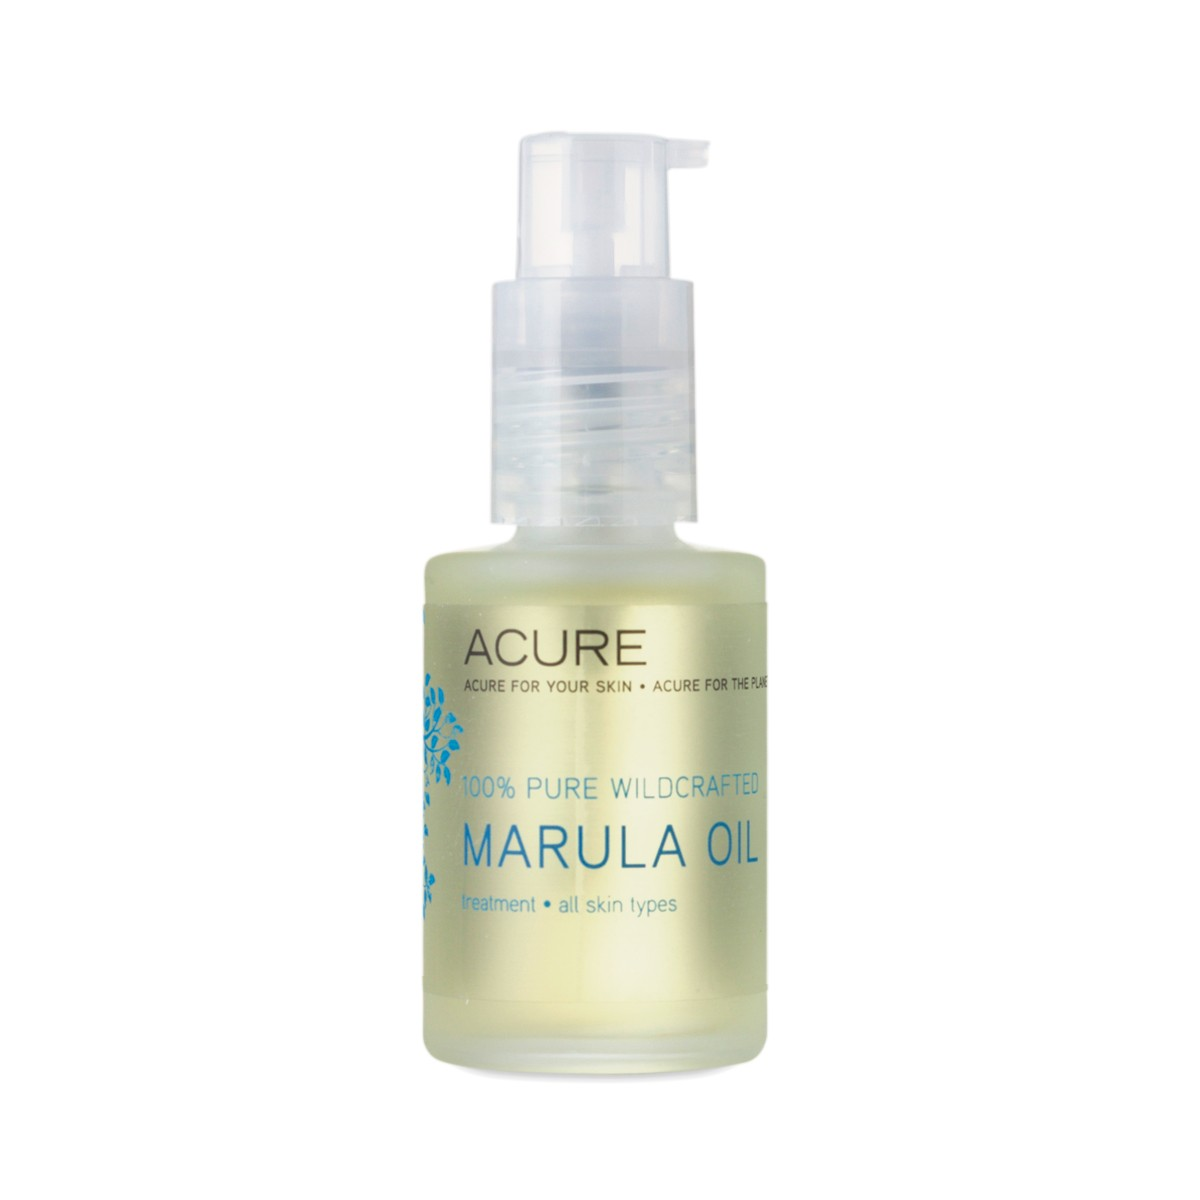 1 Oz Marula Oil 100% Pure Wildcrafted By Acure Organics